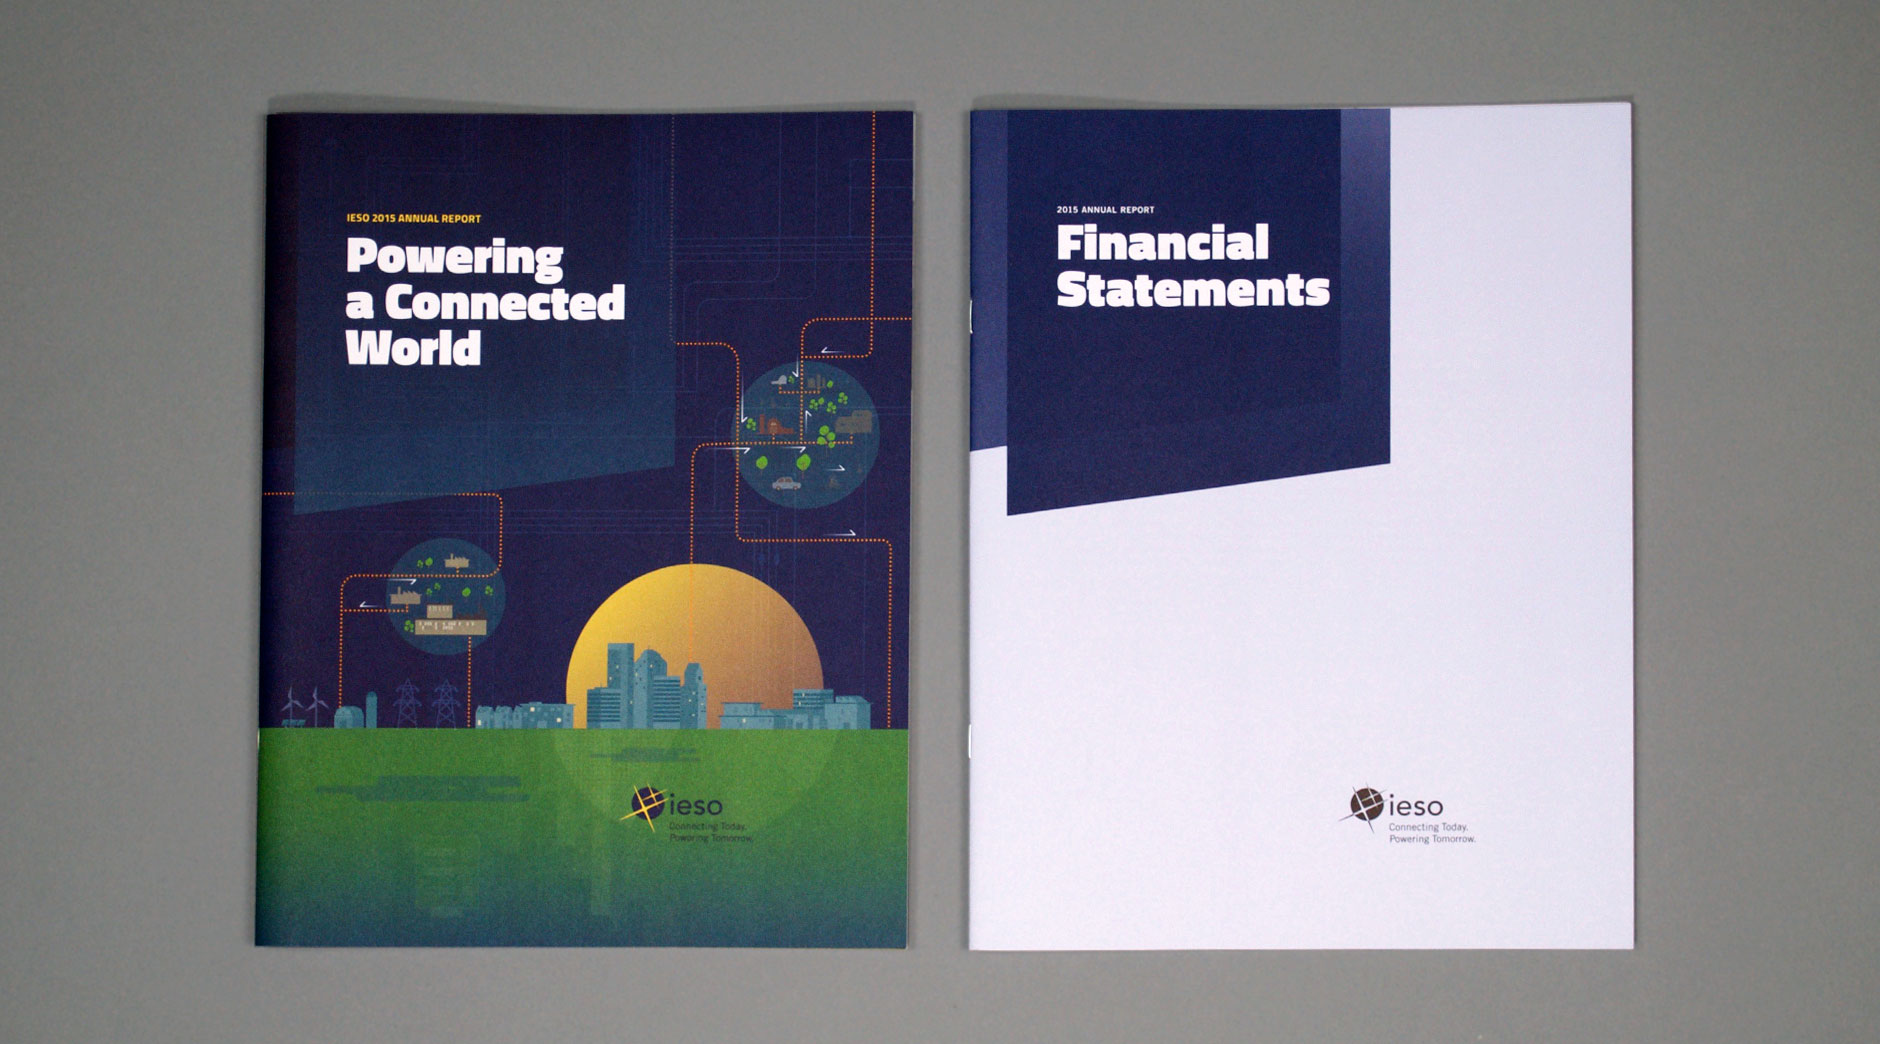 IESO Annual Report cover